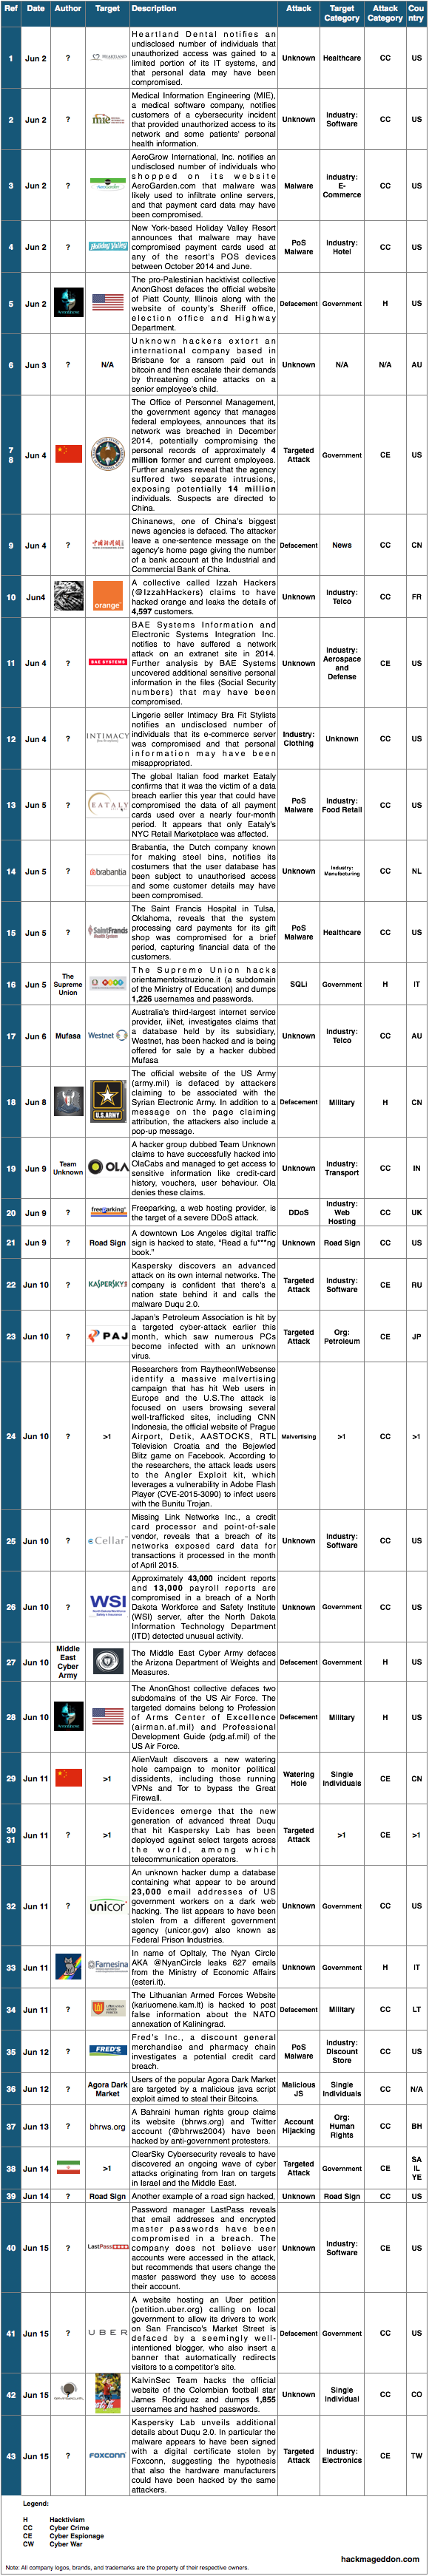 1-15 June 2015 Cyber Attacks Timeline